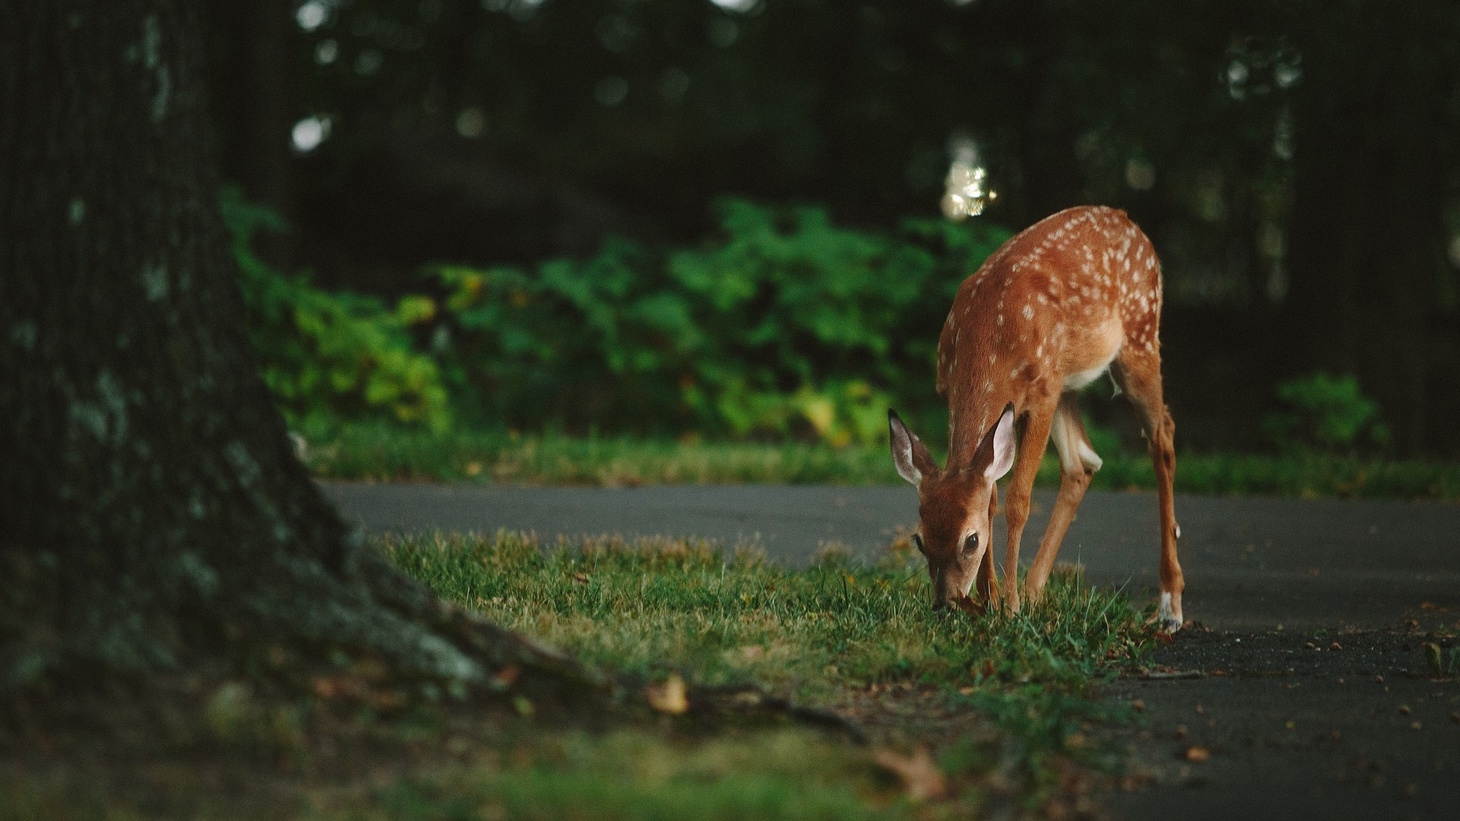 Deer by the side of the road.